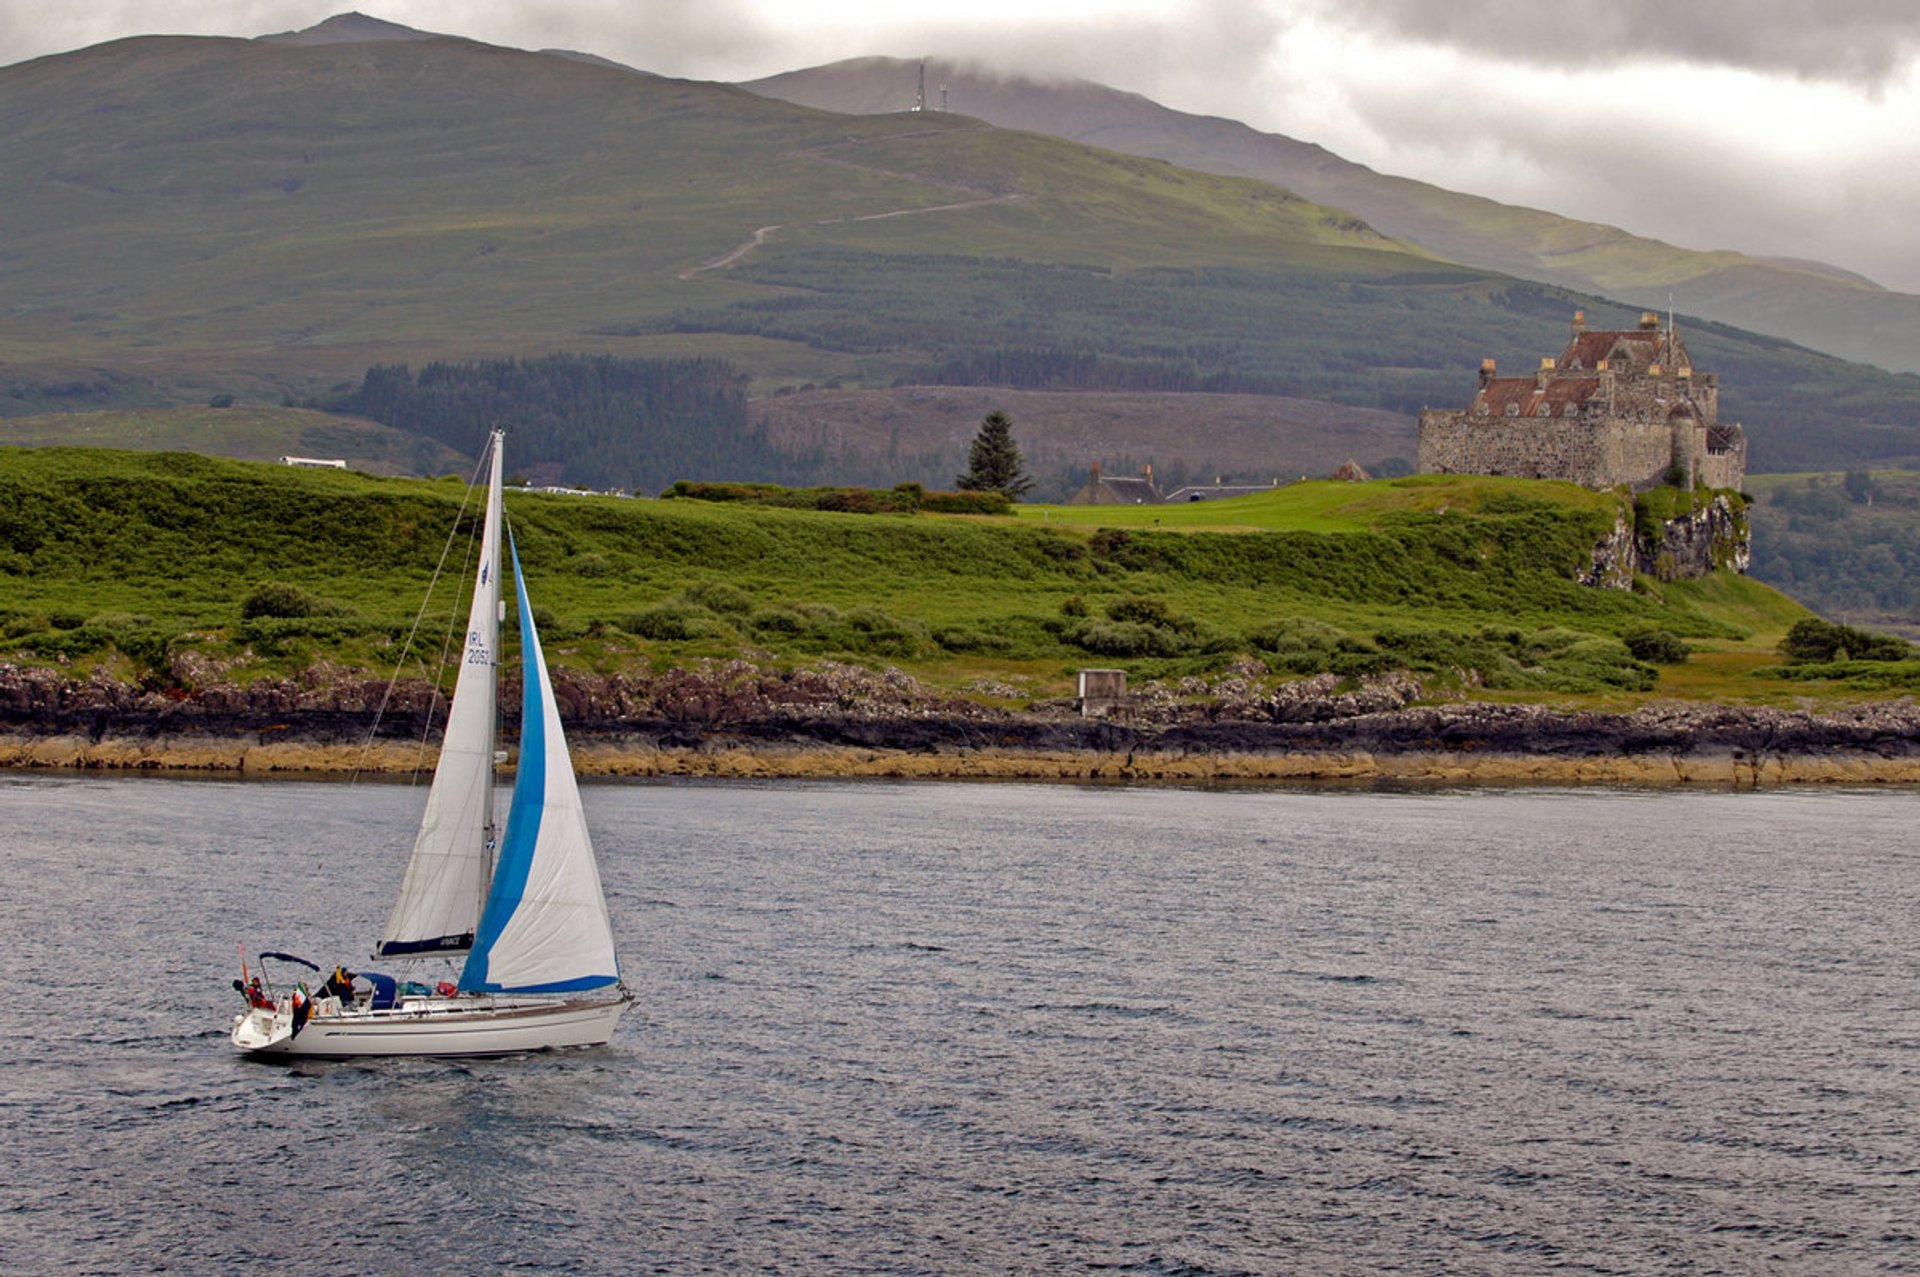 A yacht sailing in the Sound of Mull by Duart Castle on the Isle of Mull, Inner Hebrides 2020